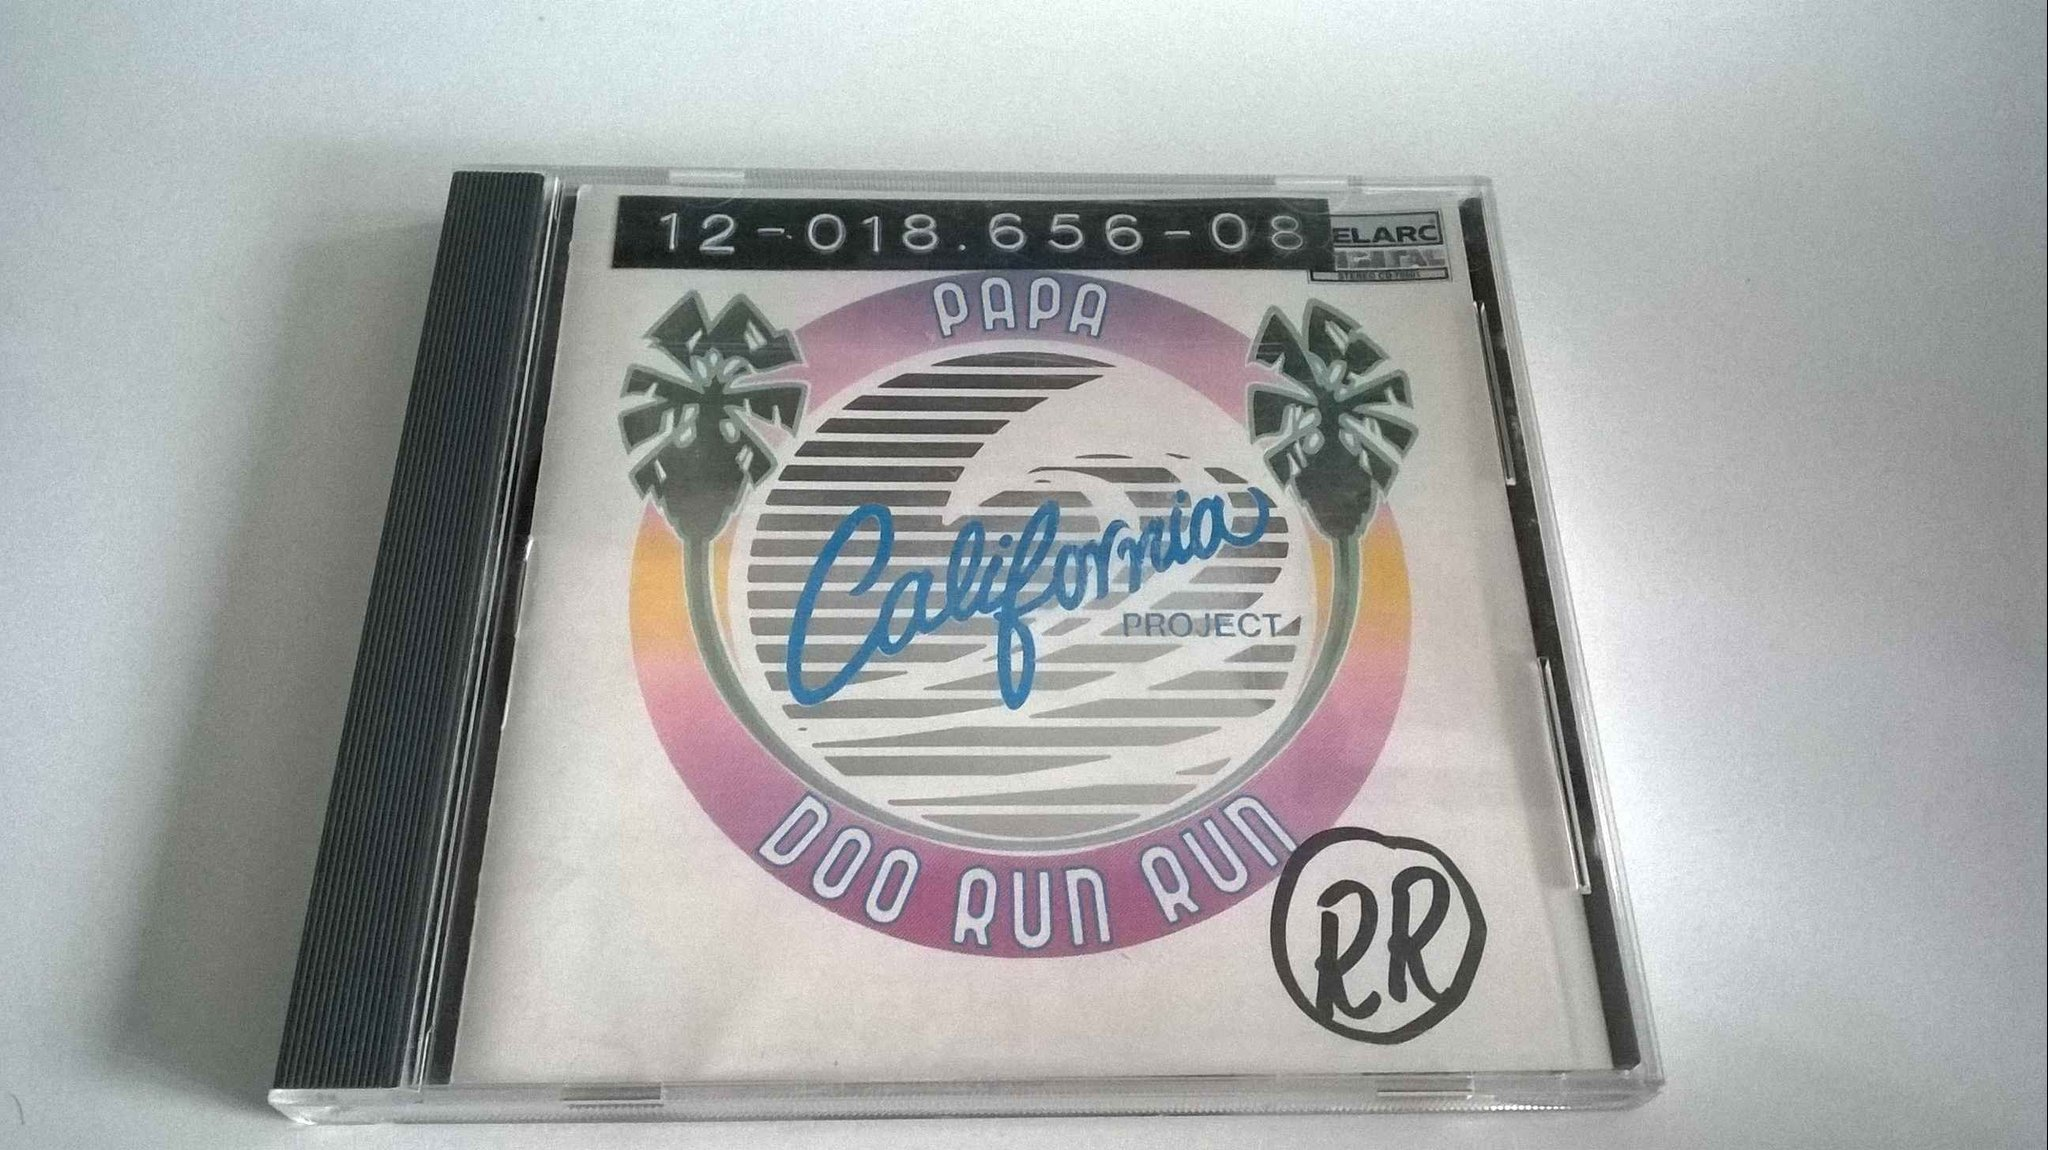 Papa Doo Run Run - California Project, CD